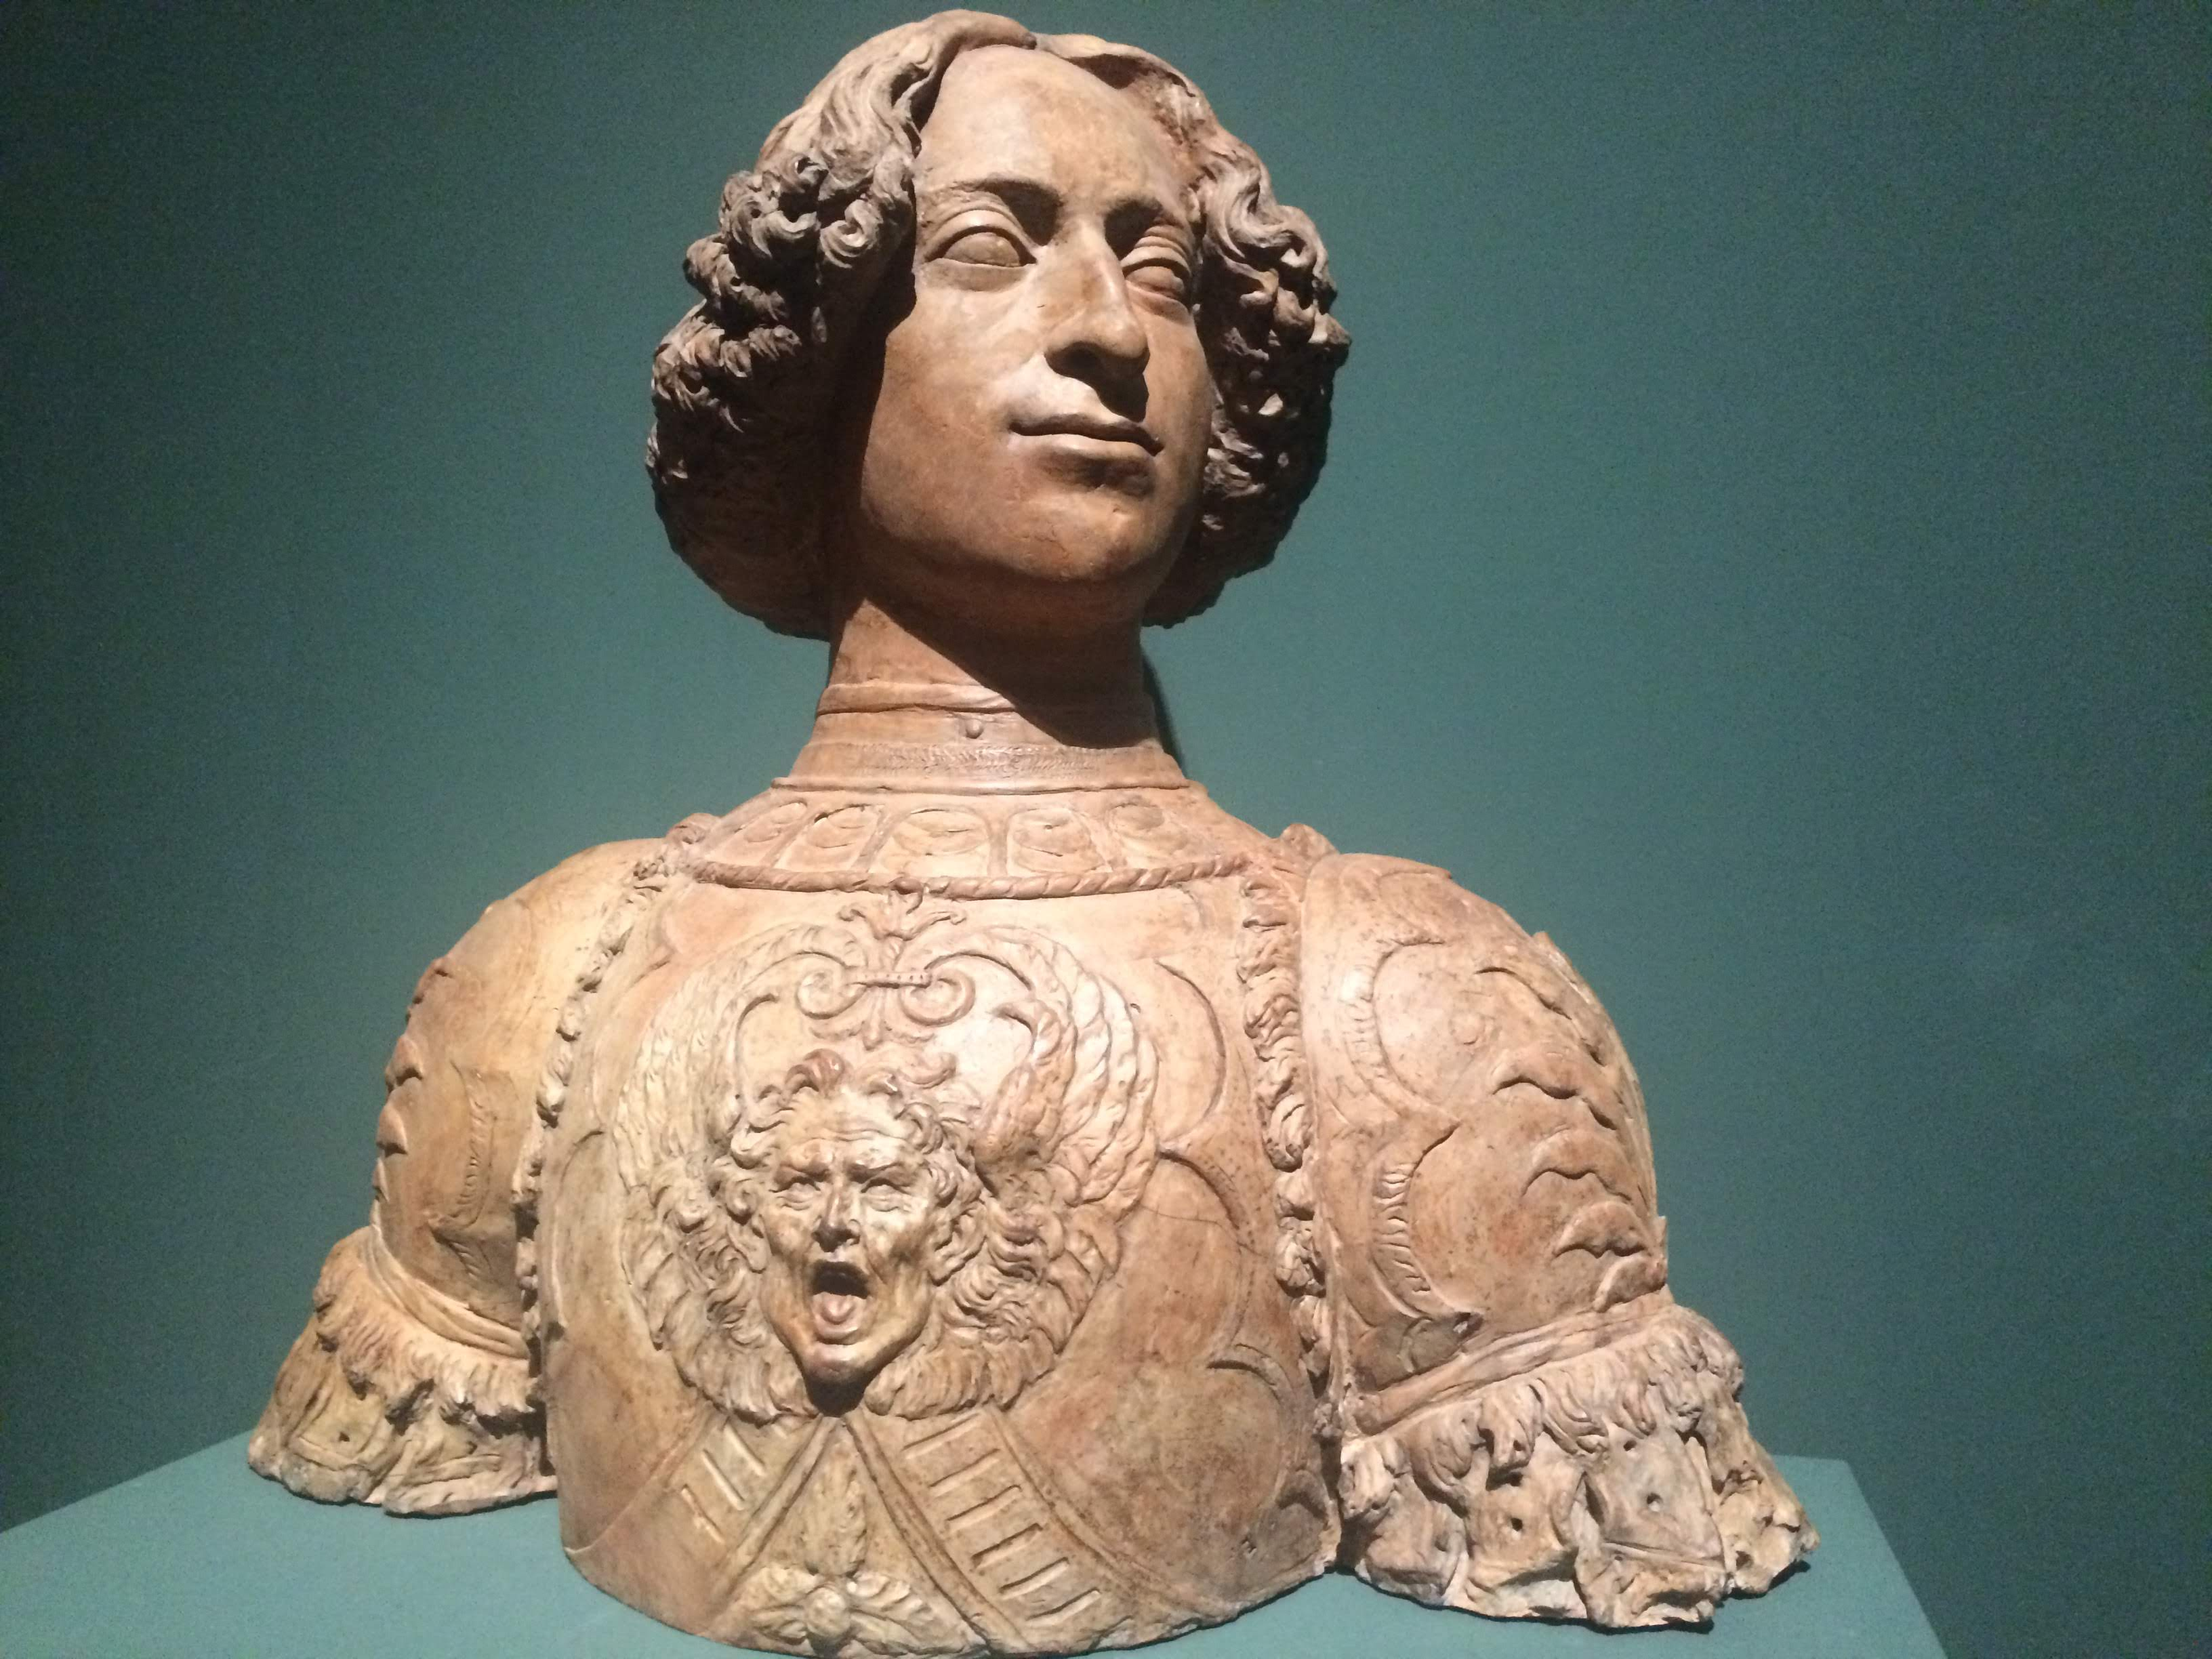 Giuliano_de_Medici_brother_of_Lorenzo_il_Magnifico